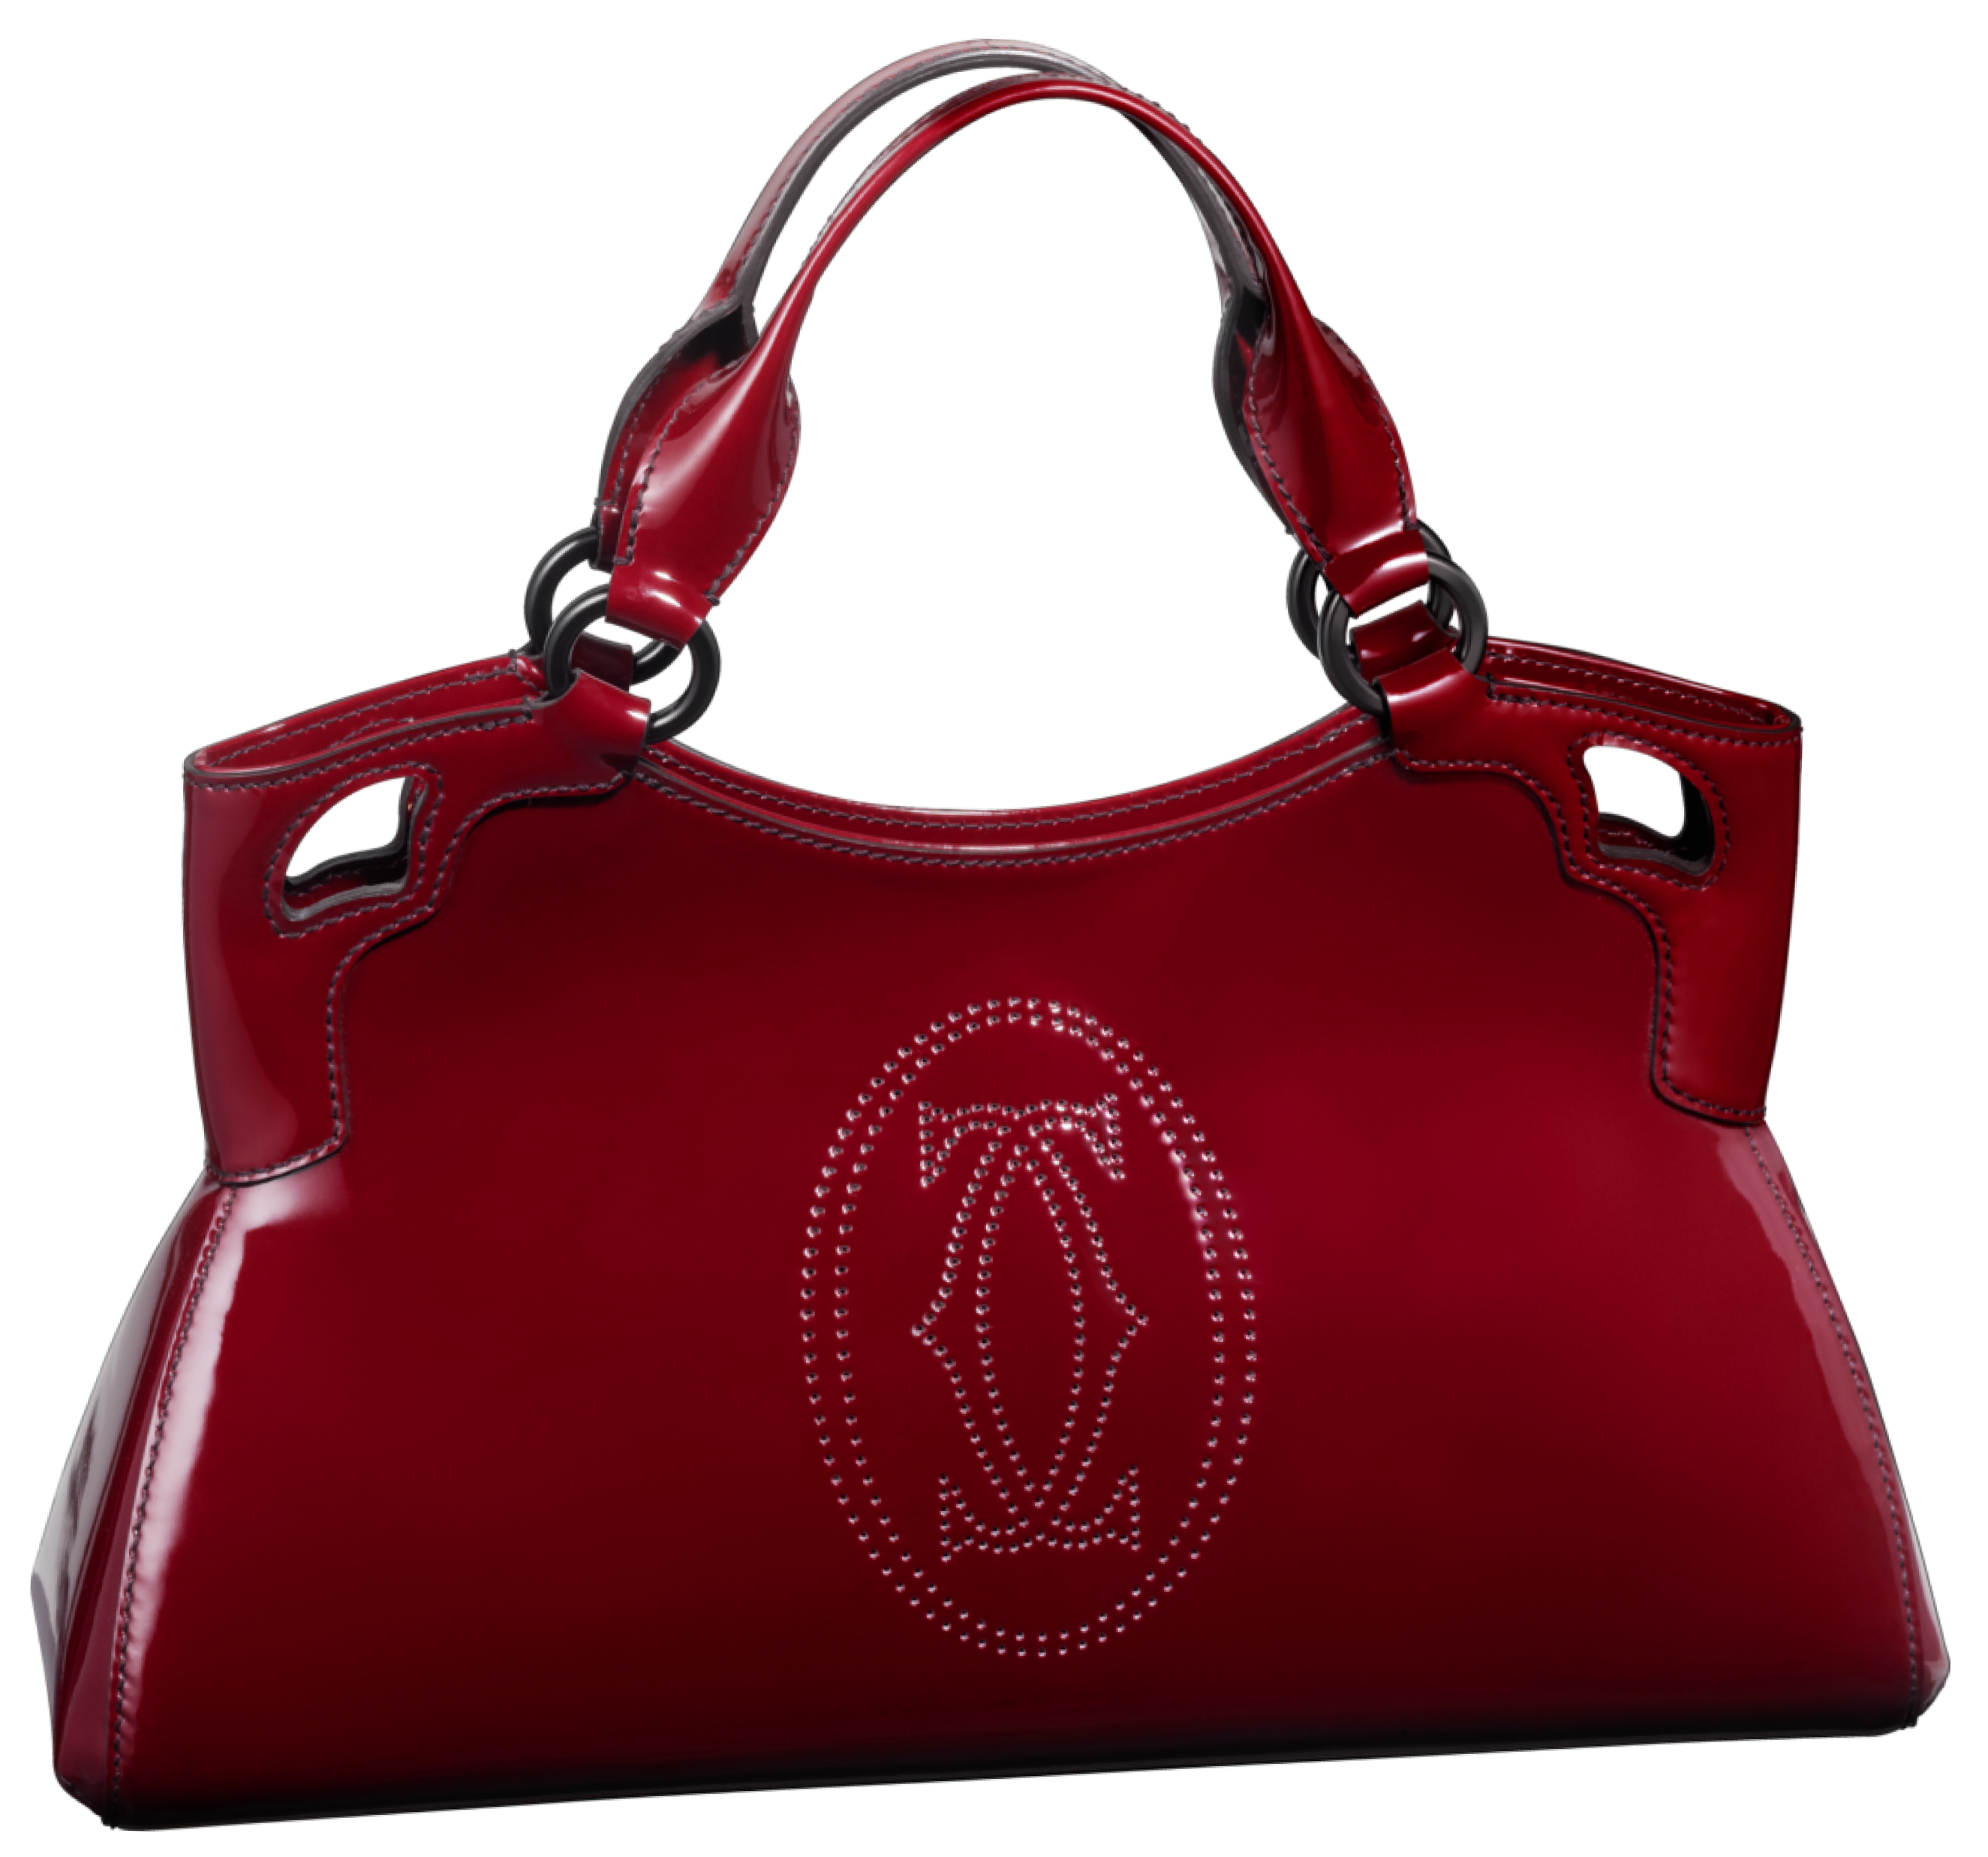 Red Cartier Handbag PNG Clip Art.